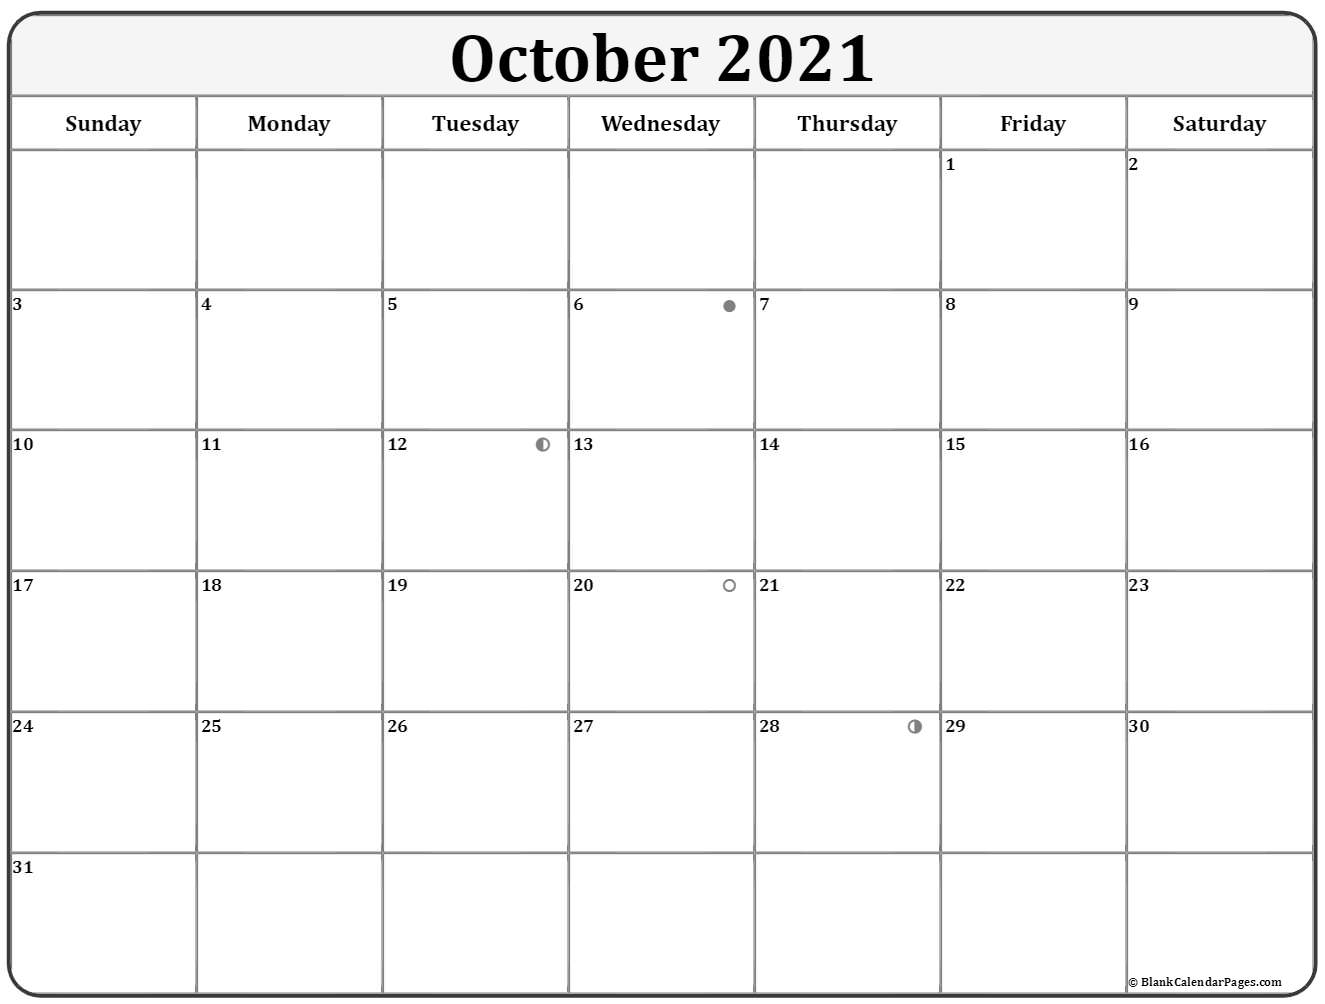 October 2020 moon phase calendar. lunar calendar